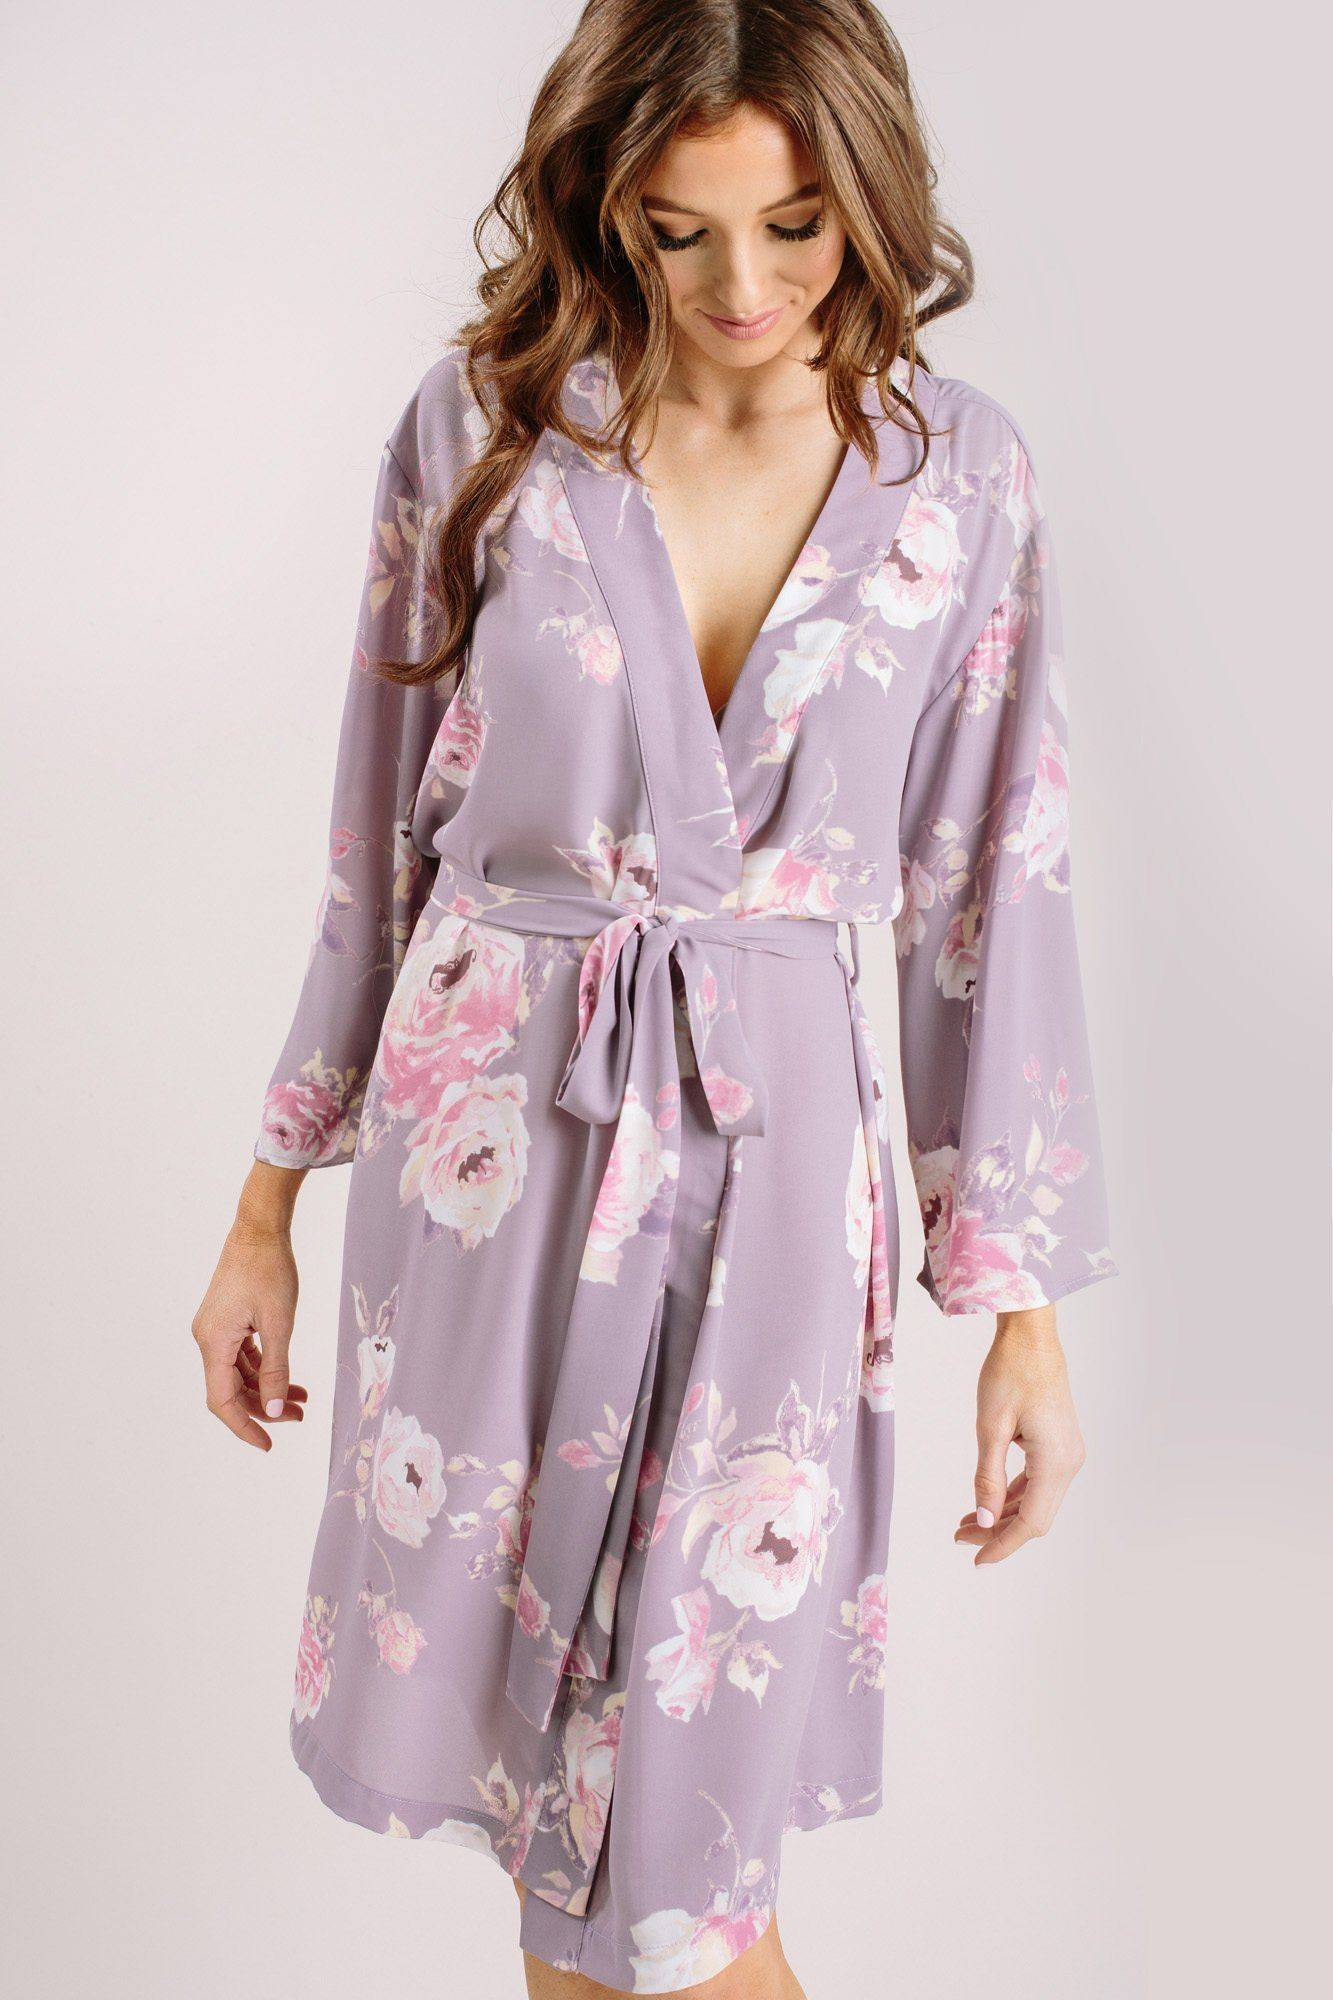 Everly Sienna Floral Robe